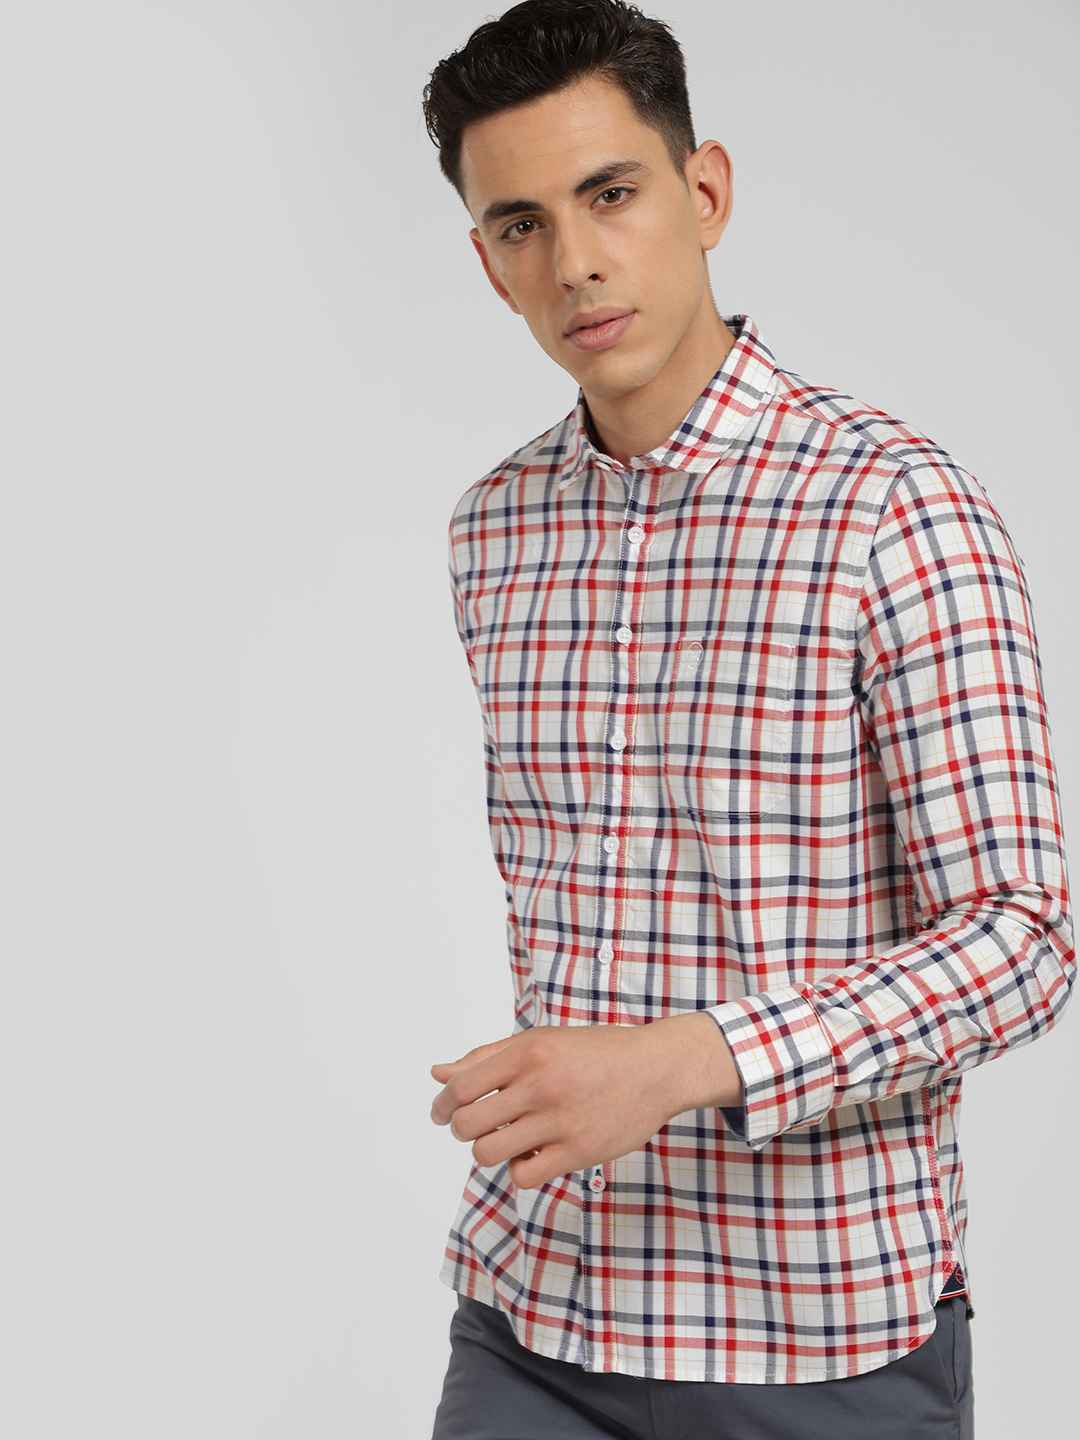 SCULLERS White Long Sleeve Multi-Check Shirt 1